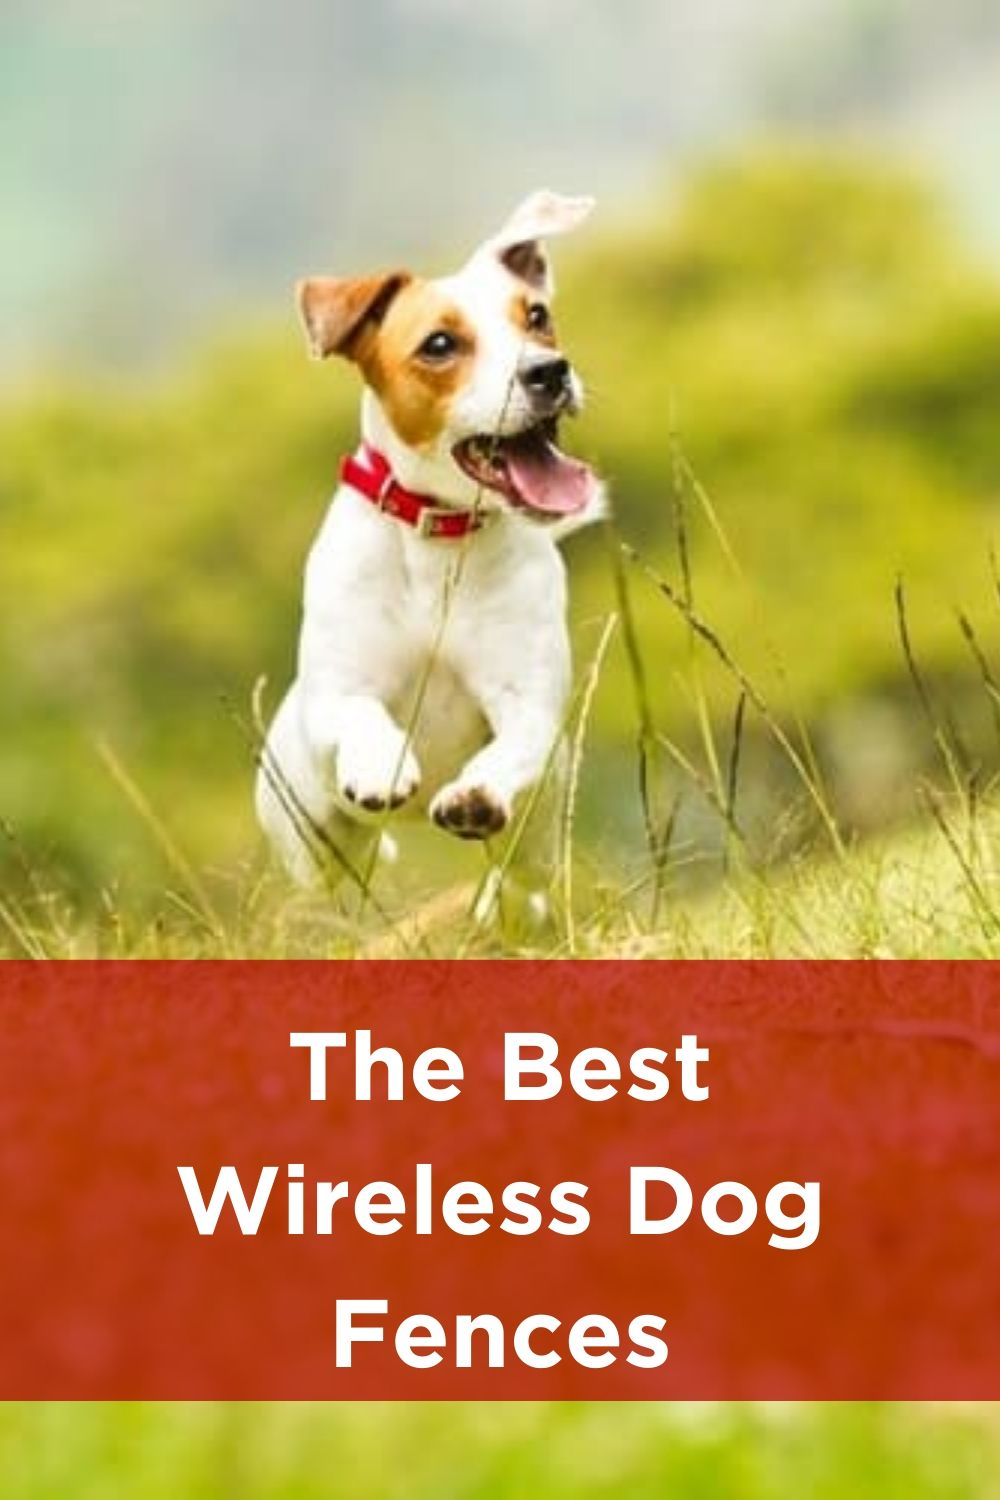 The Best Wireless Dog Fences 2020 Reviews If You Re In The Market For A Simple Solution To Your Canine Escape Artist Your In 2020 Wireless Dog Fence Dog Fence Dogs